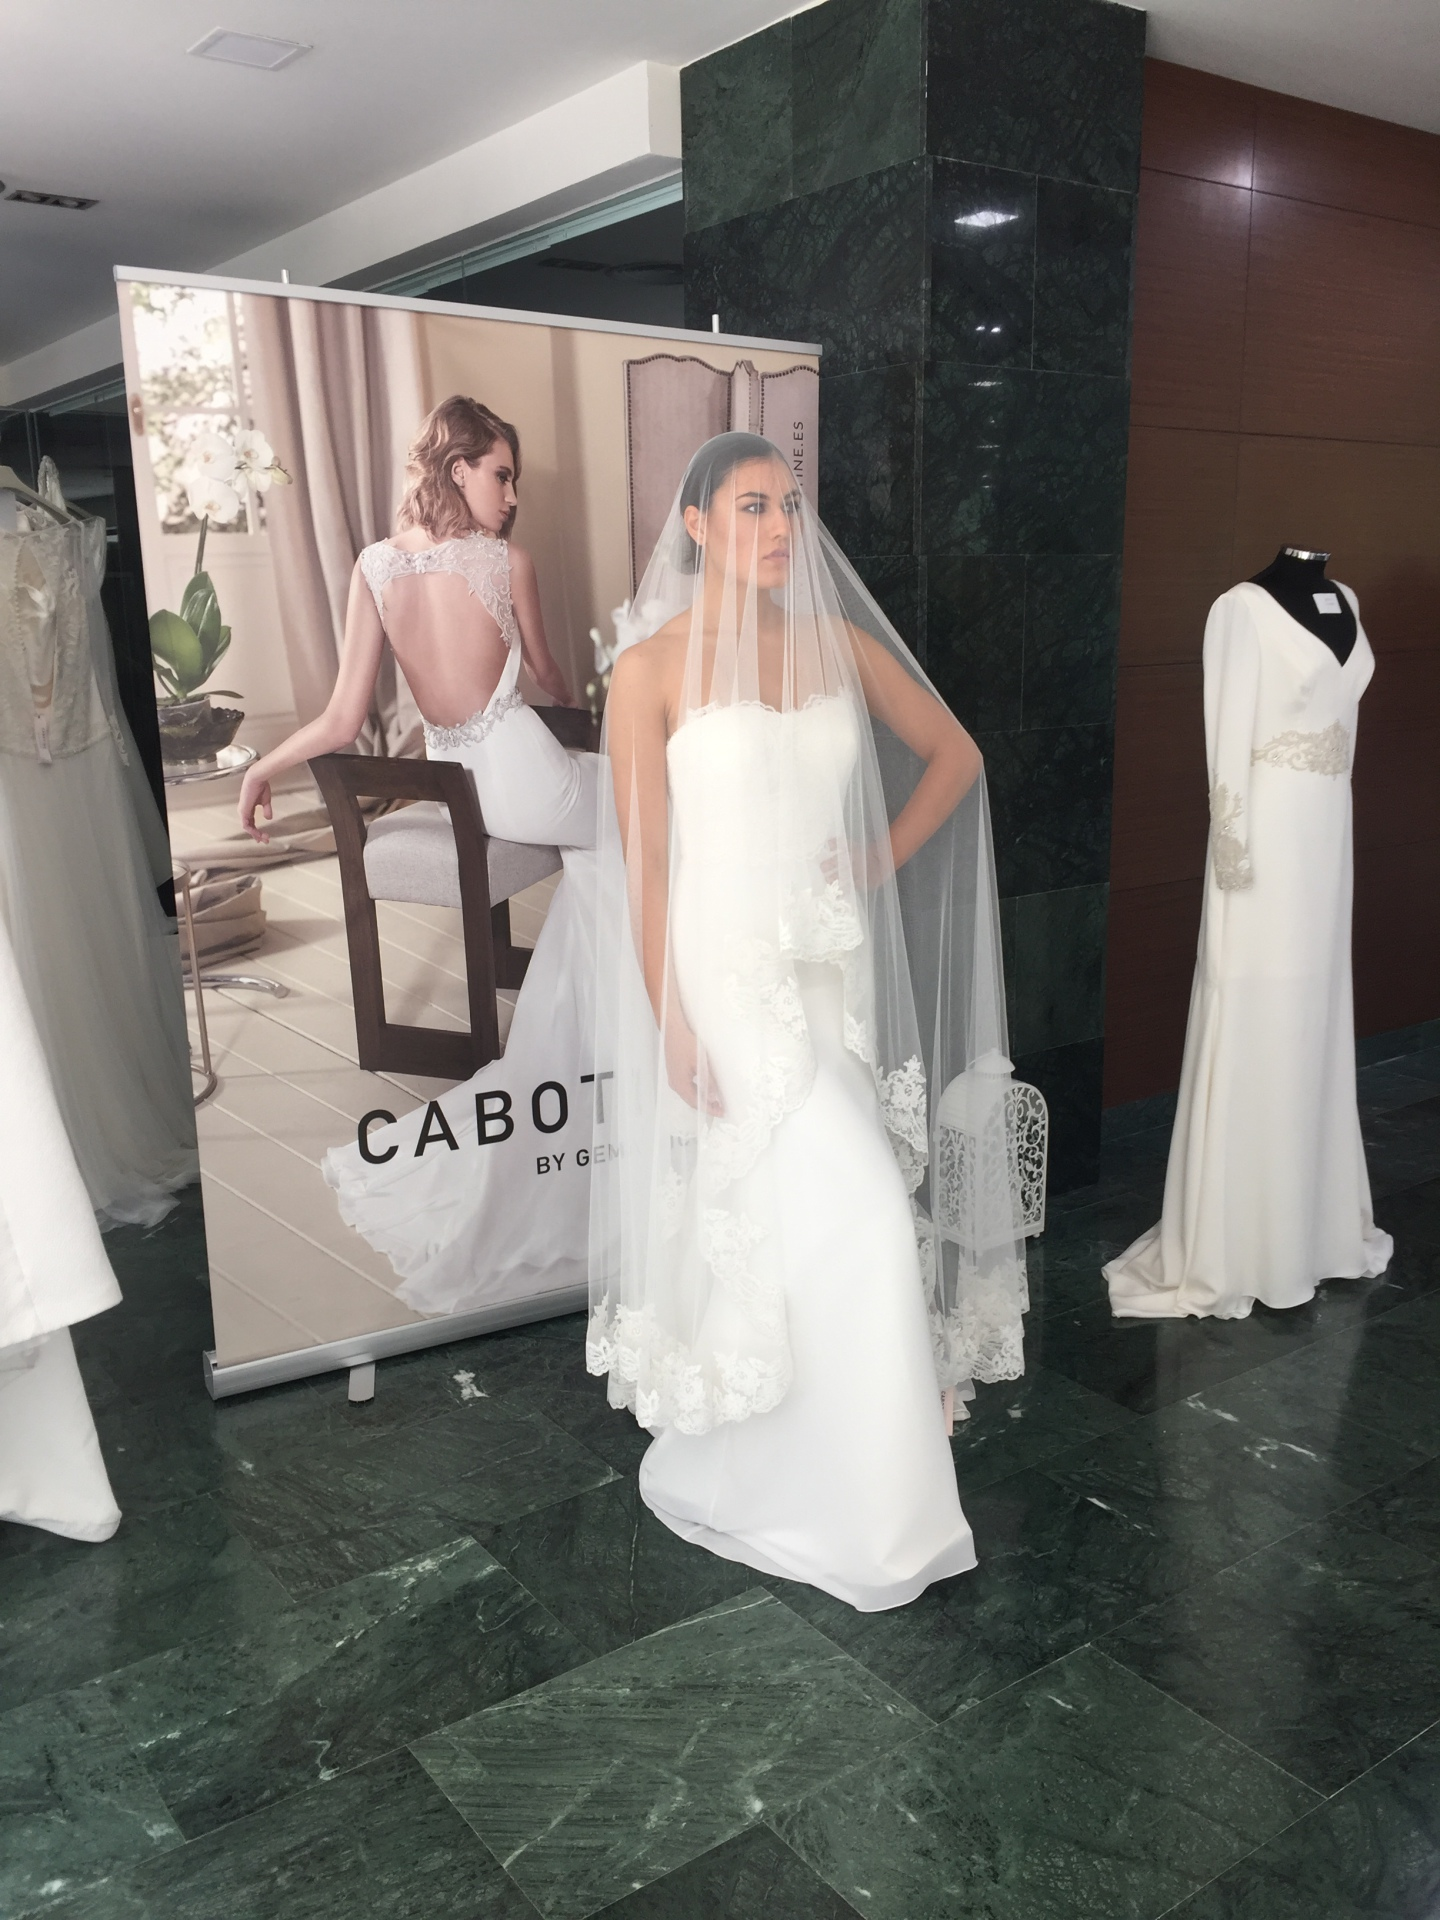 The new collection from Cabotine